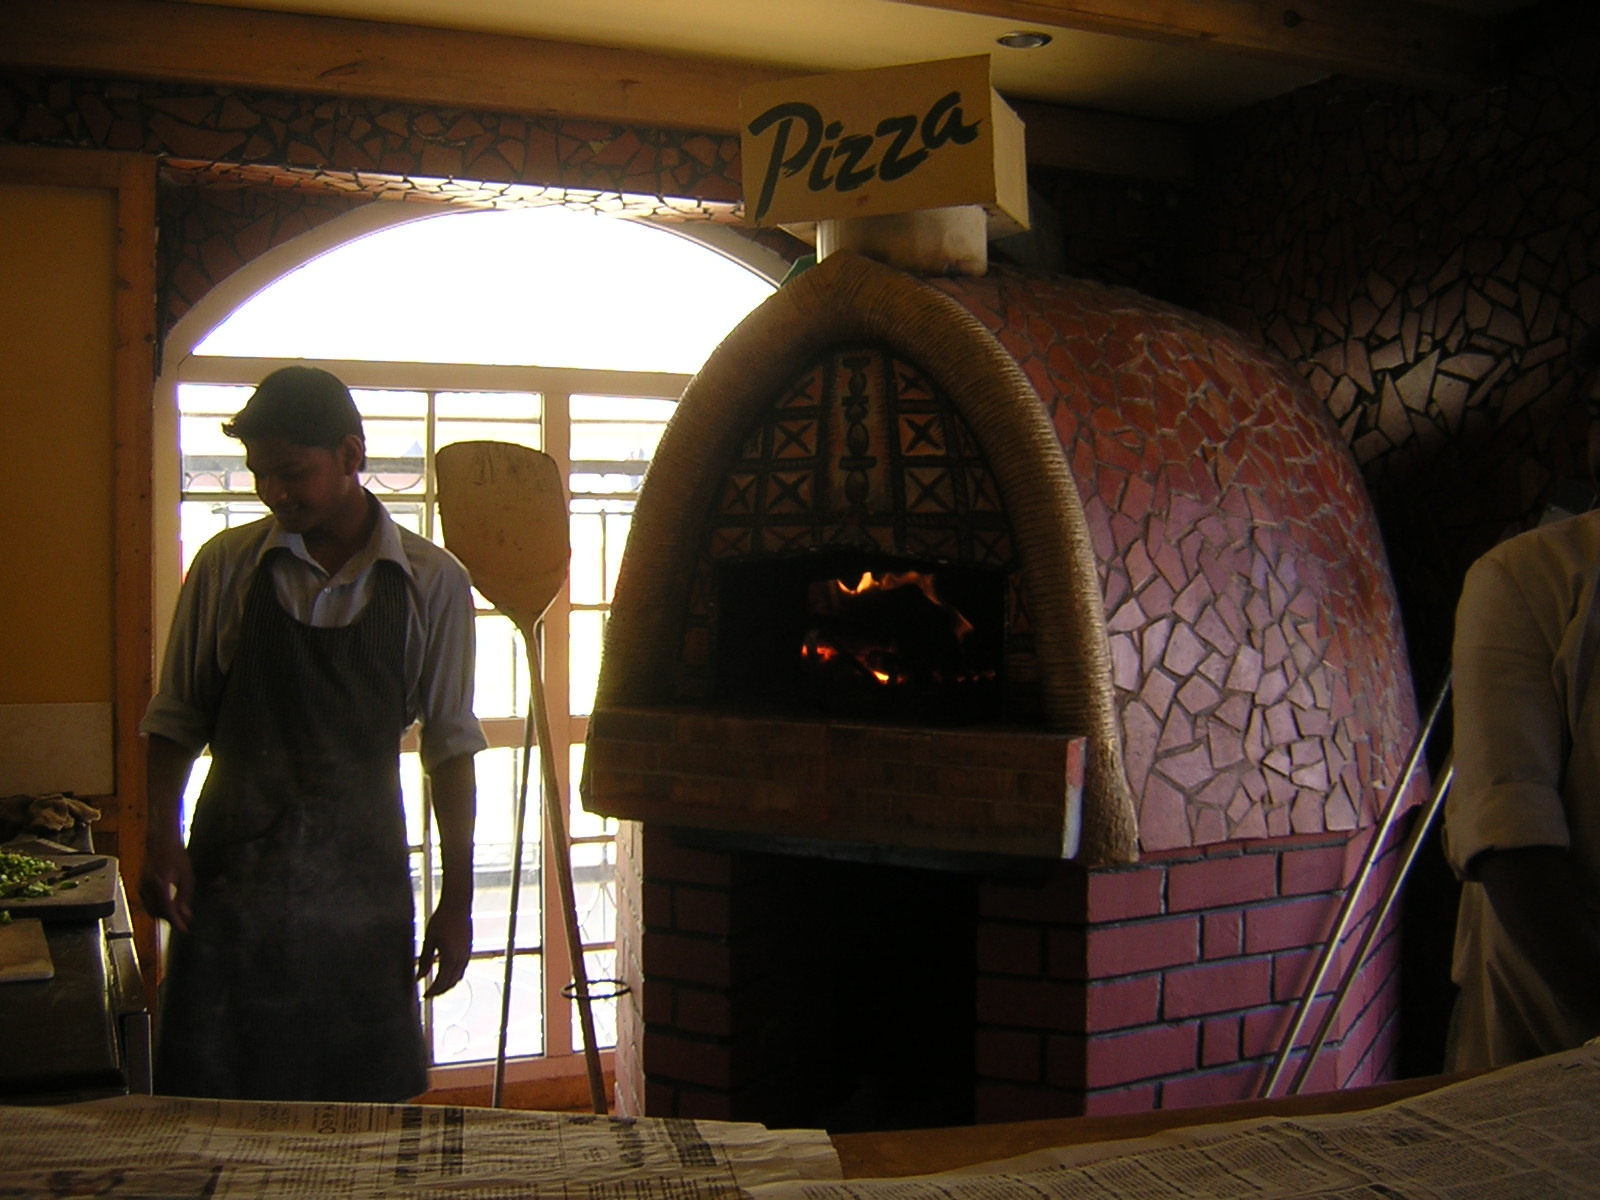 Wood fired pizza at the Coffee Shop in Nahar, Charing Cross, Ooty